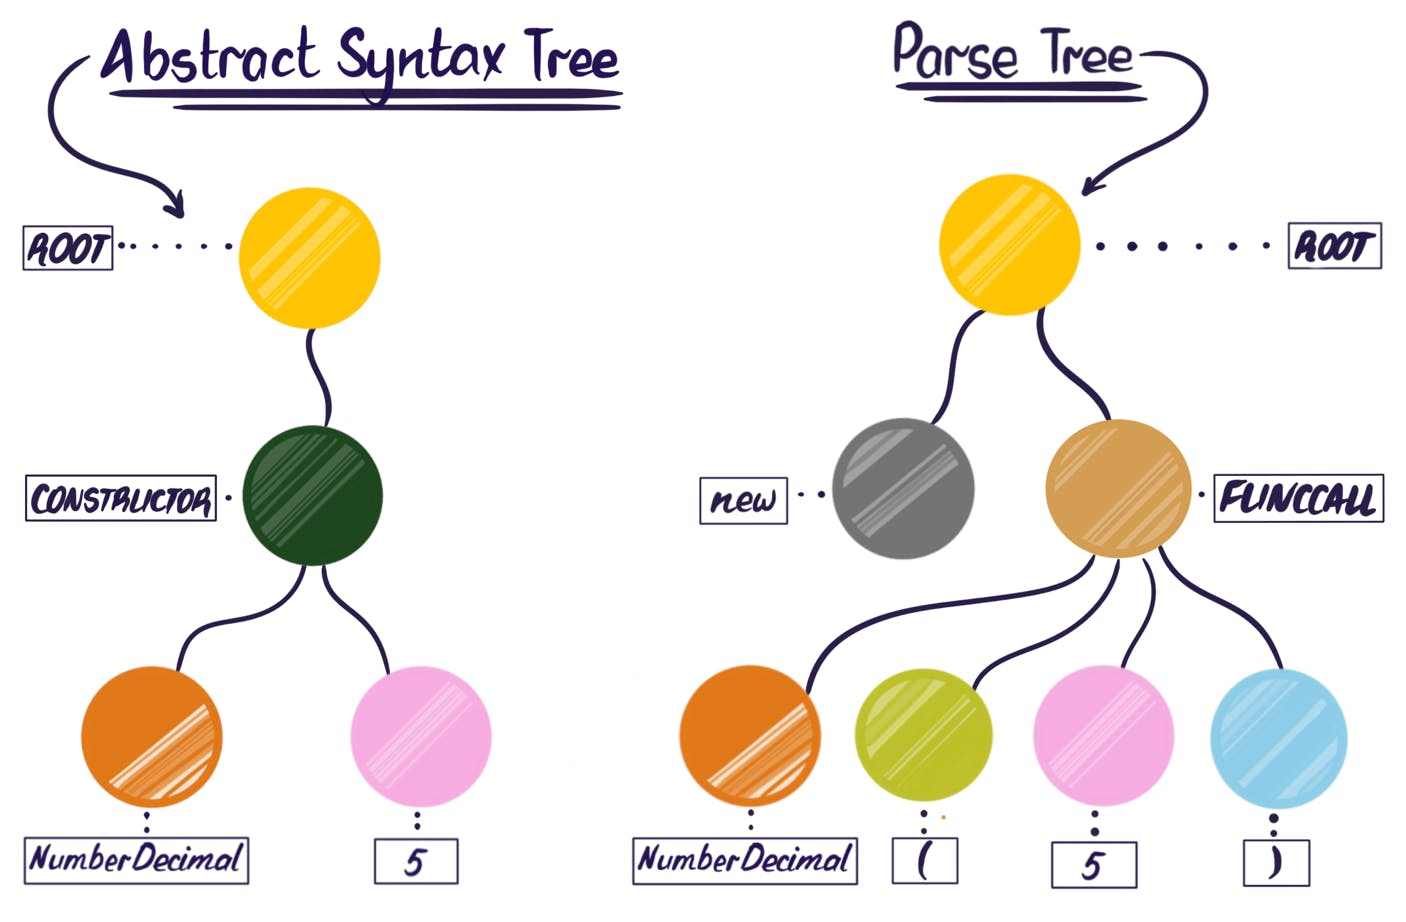 Diagram of the abstract syntax tree and parse tree comparison